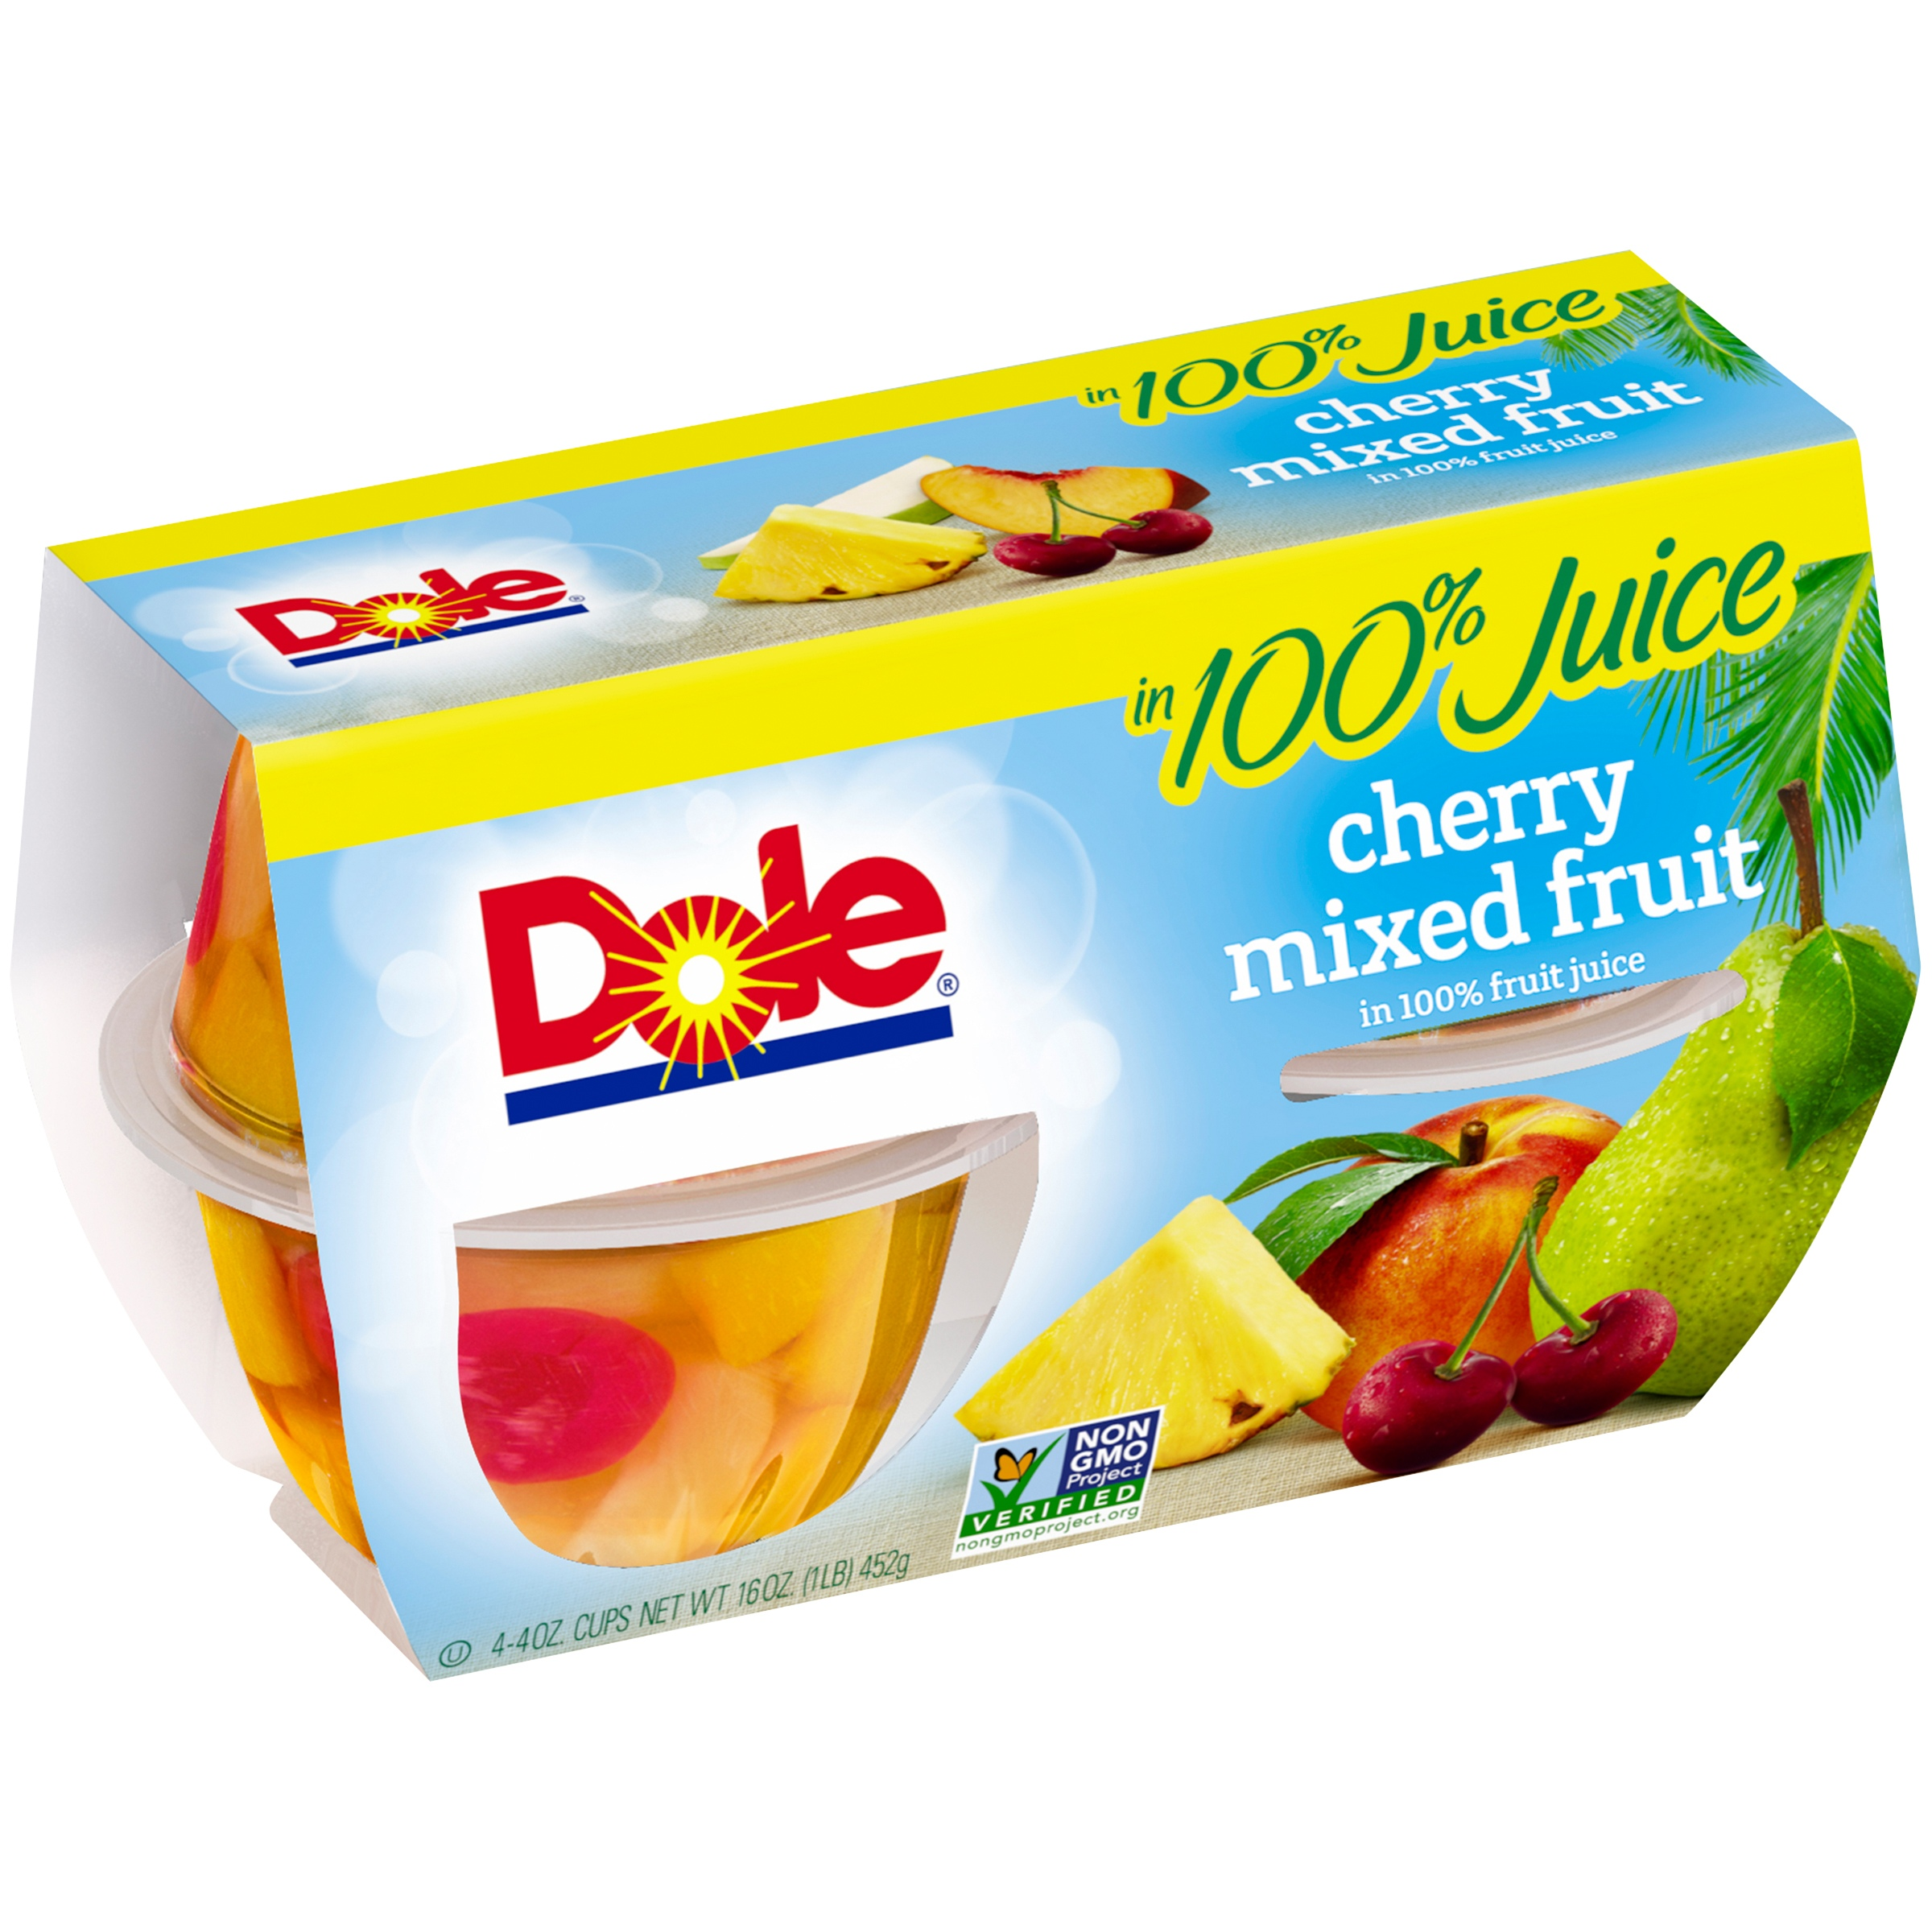 Dole Cherry Mixed Fruit in 100% Fruit Juice, 4-4 oz. Cups